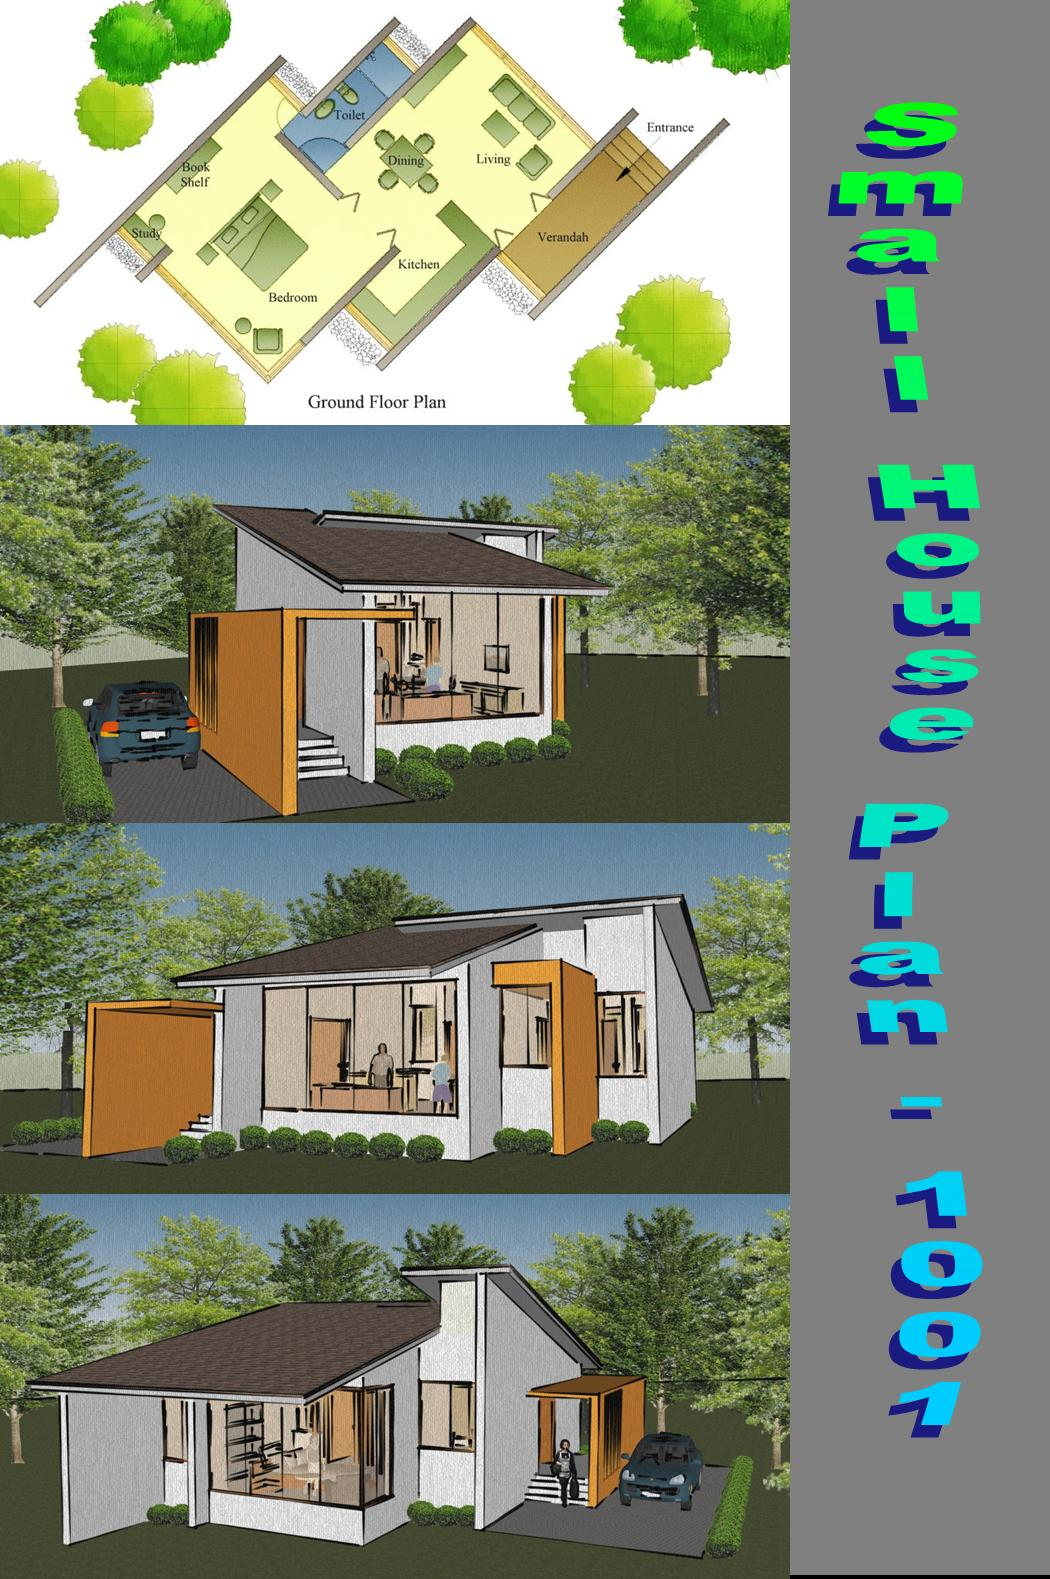 Home plans in india 5 best small home plans from for Small house plans and designs